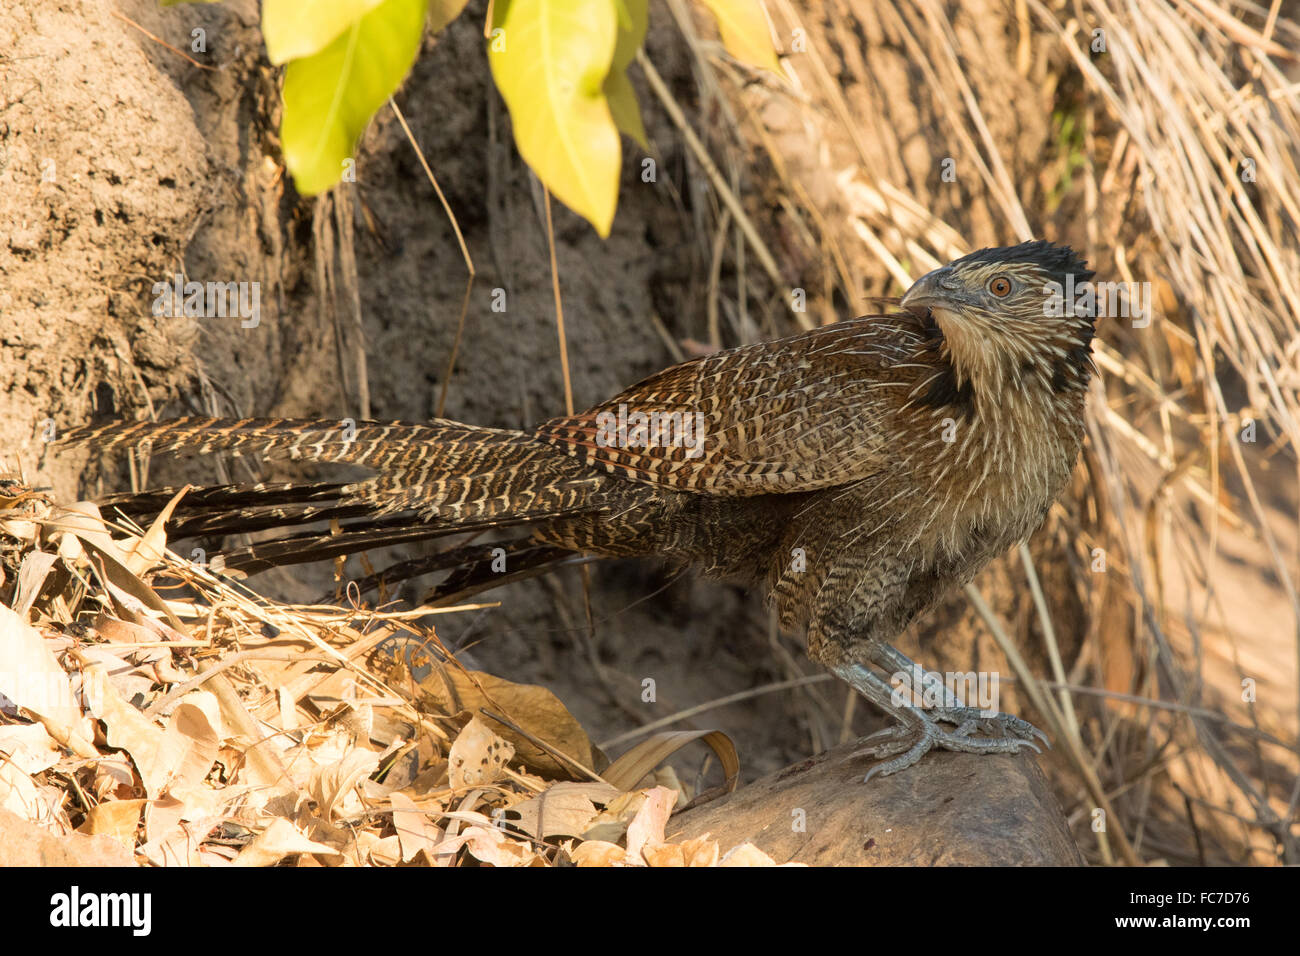 Pheasant Coucal (Centropus phasianinus) sheltering in the shade - Stock Image